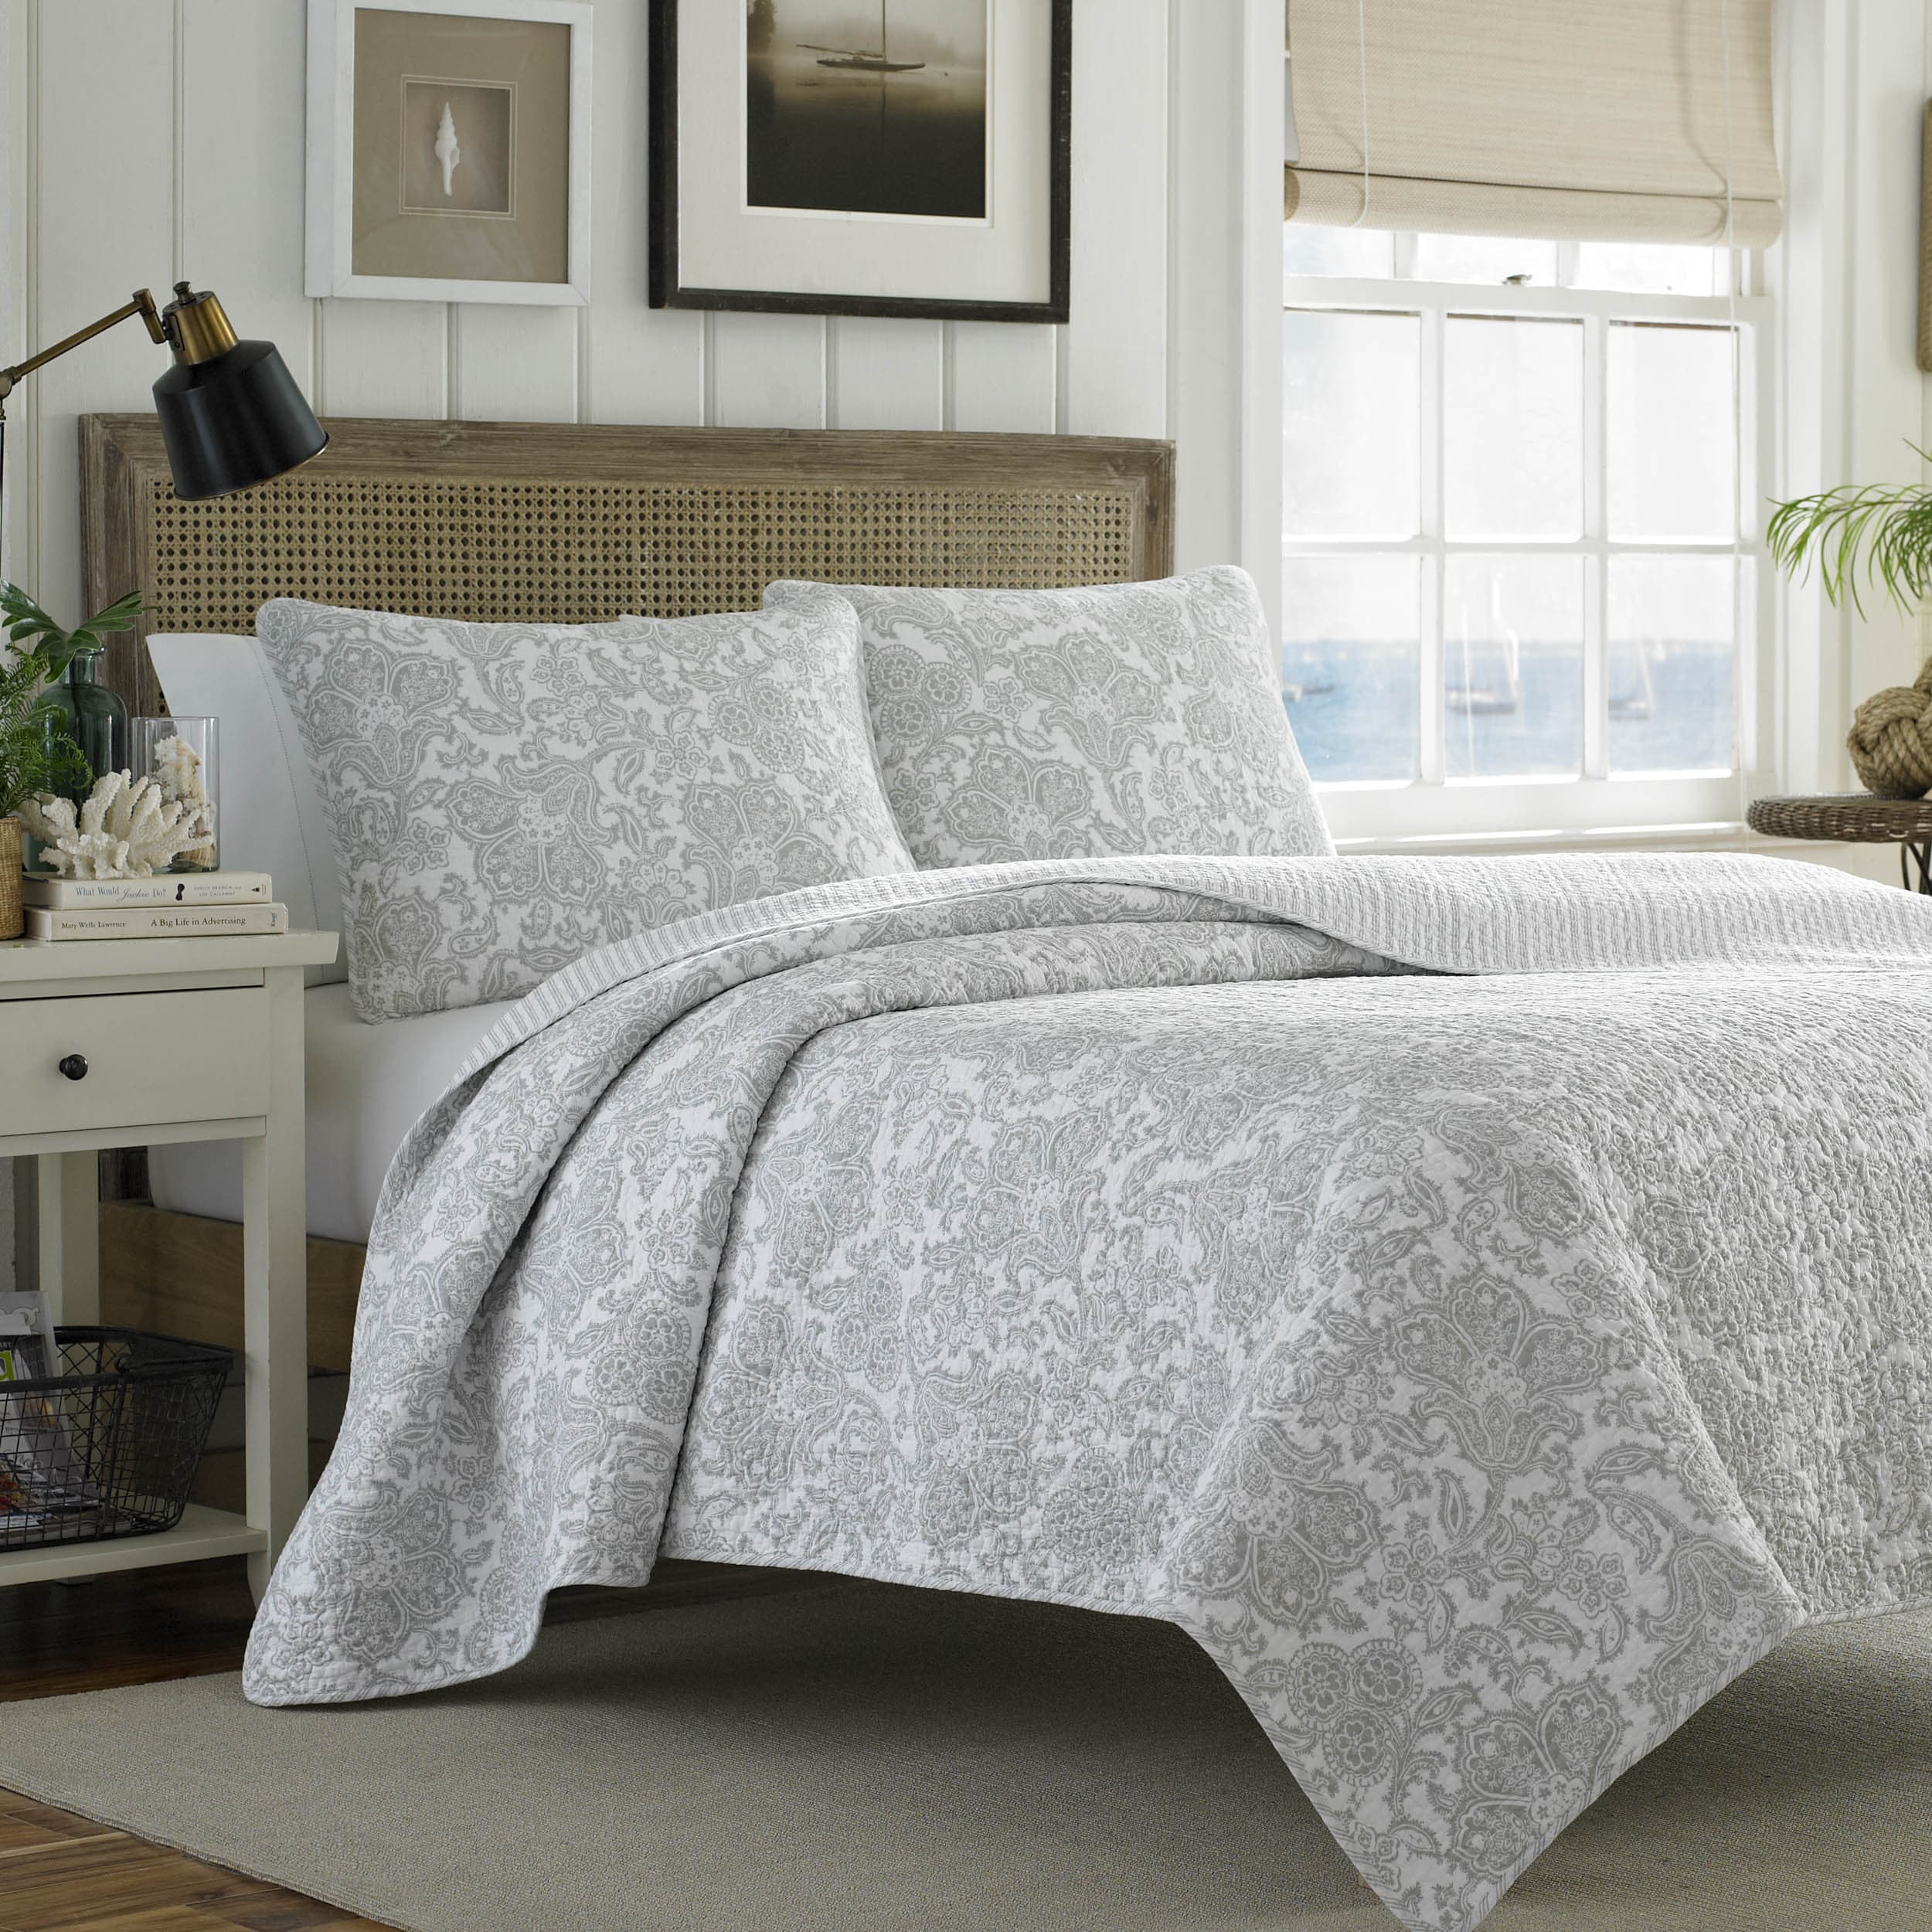 Tommy Bahama Island Memory Gray 3 Piece Quilt Set On Sale Overstock 10223123